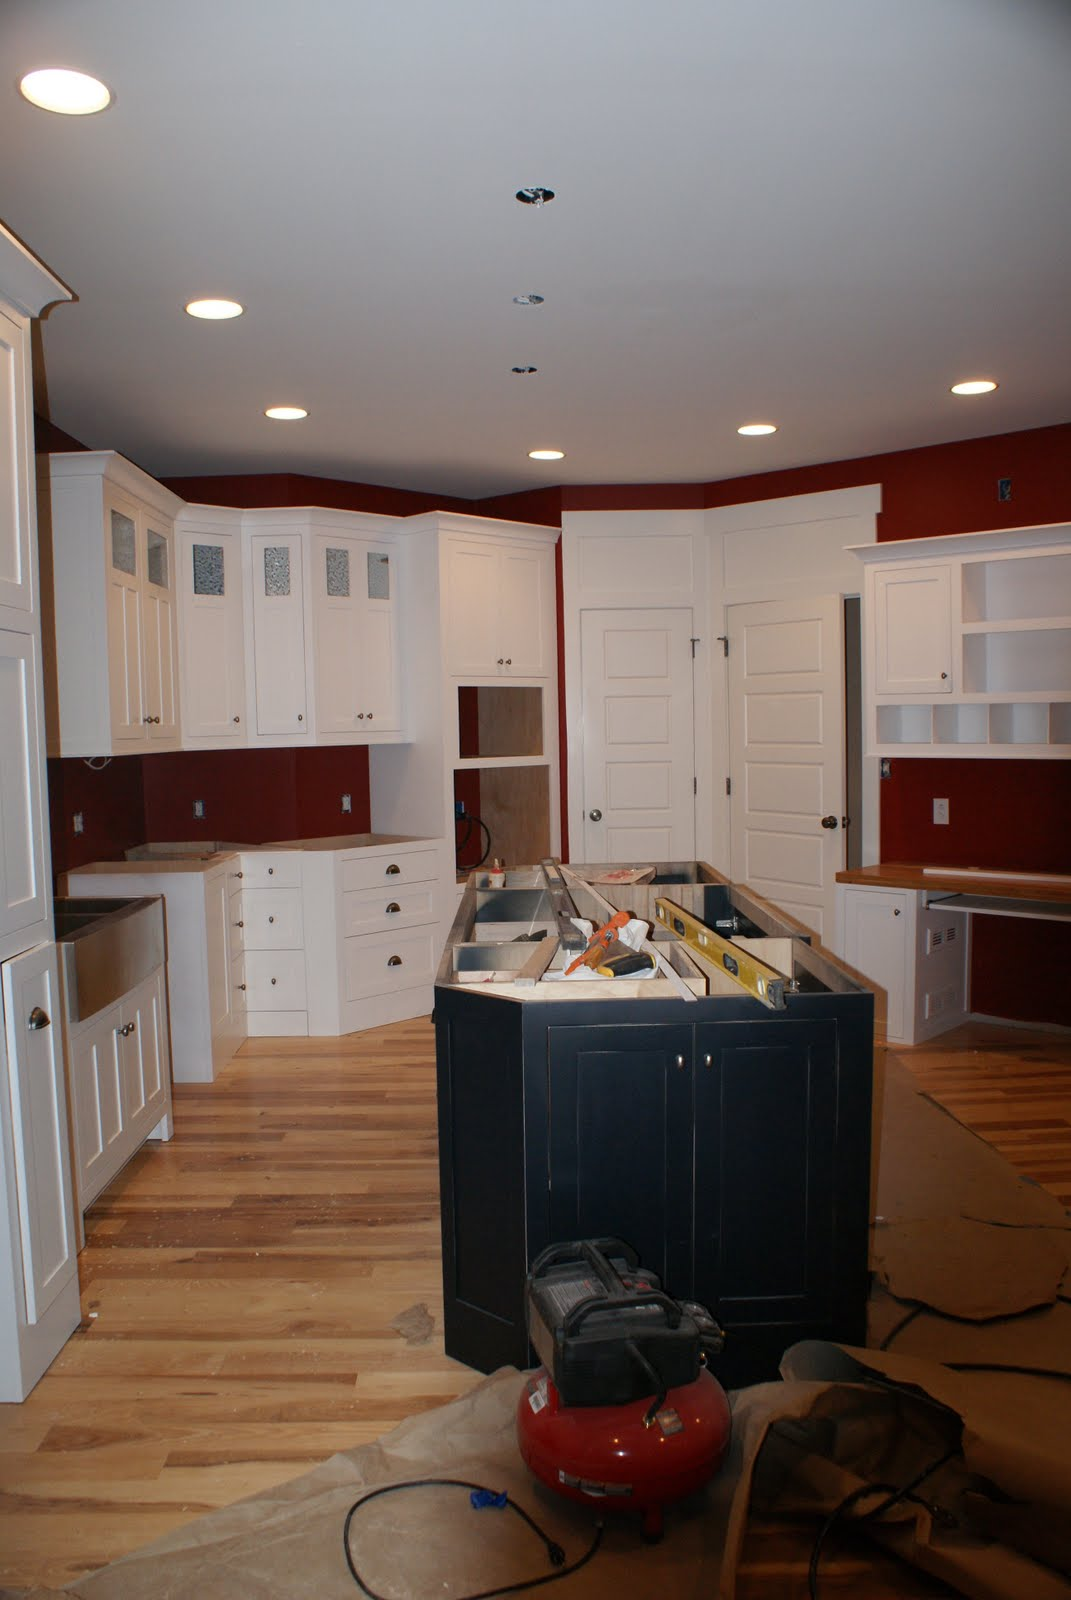 Kitchen Island and most of the cabinets as well as pantry door and